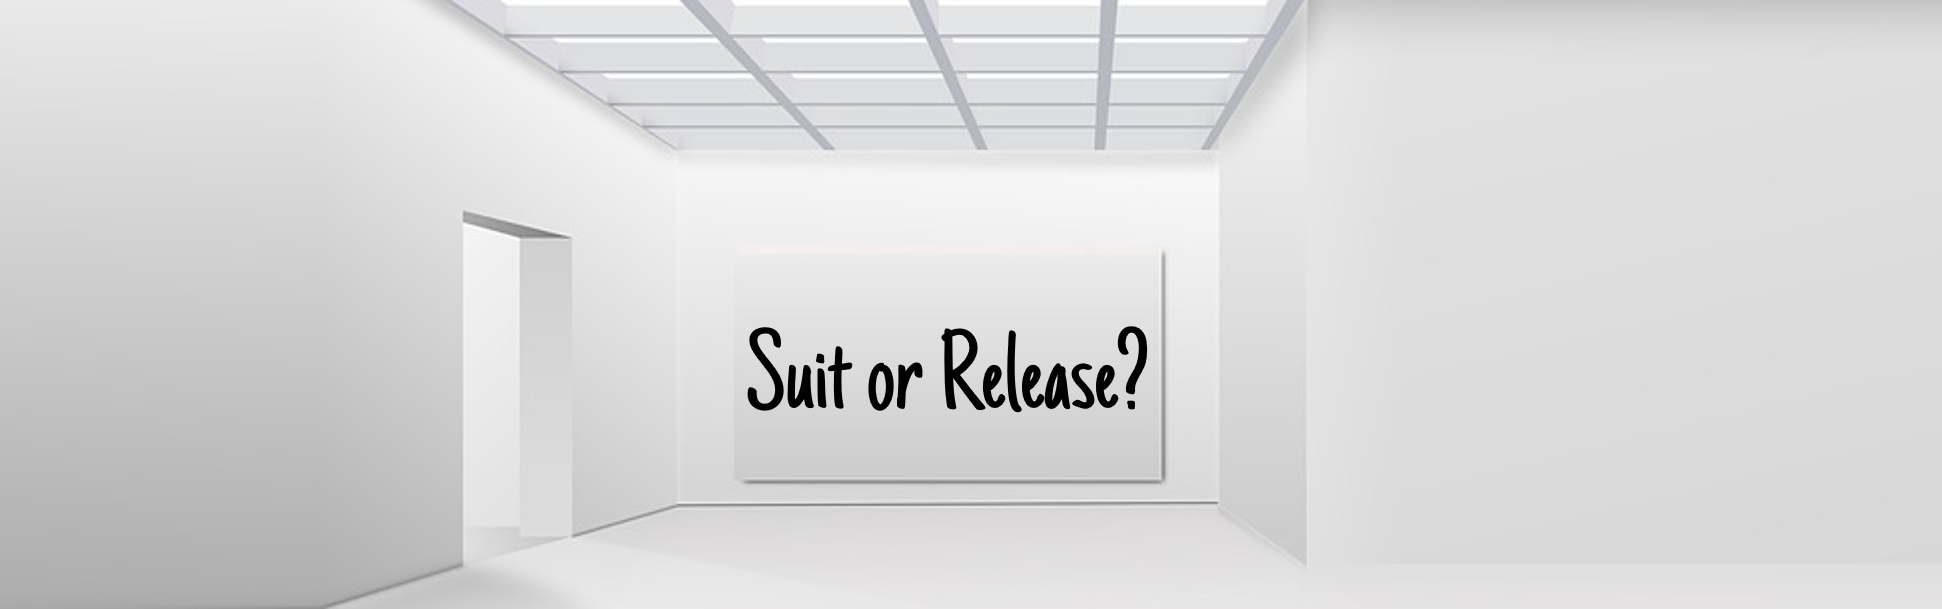 A picture containing indoor, cabinet, wall, facing sign that reads Suit or Release?